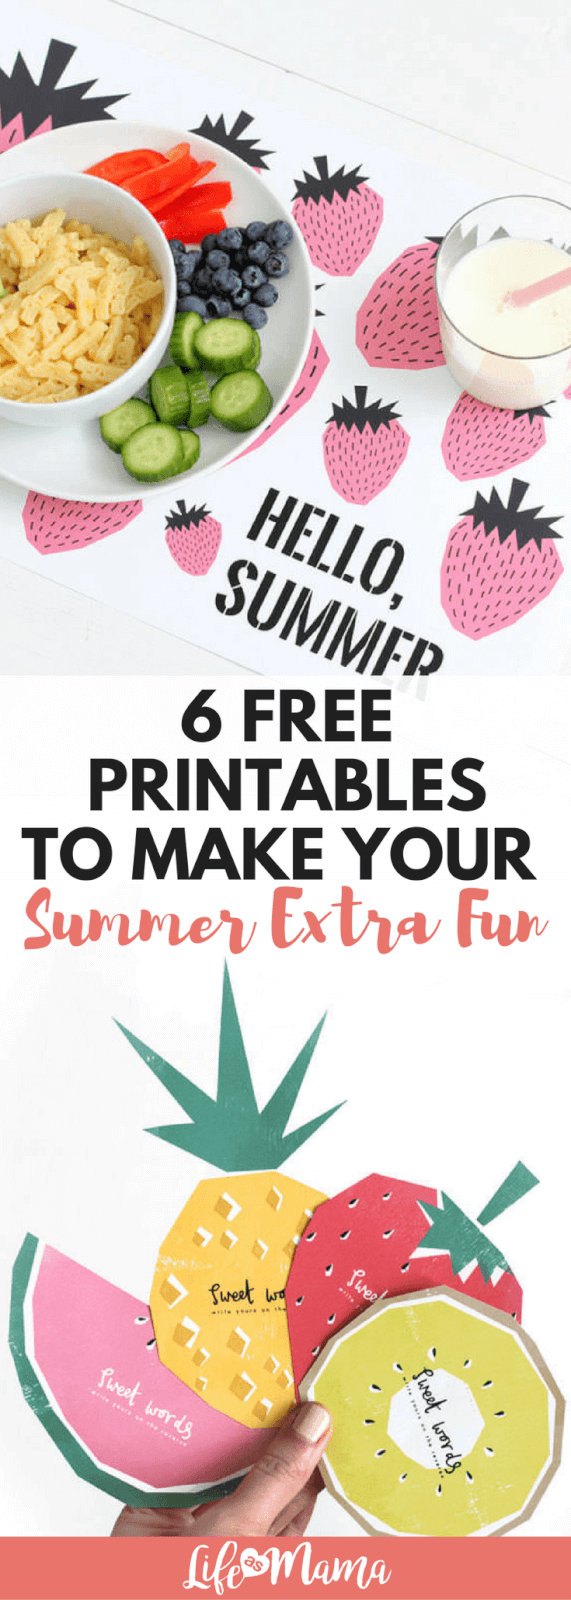 6 free printables to make your summer extra fun